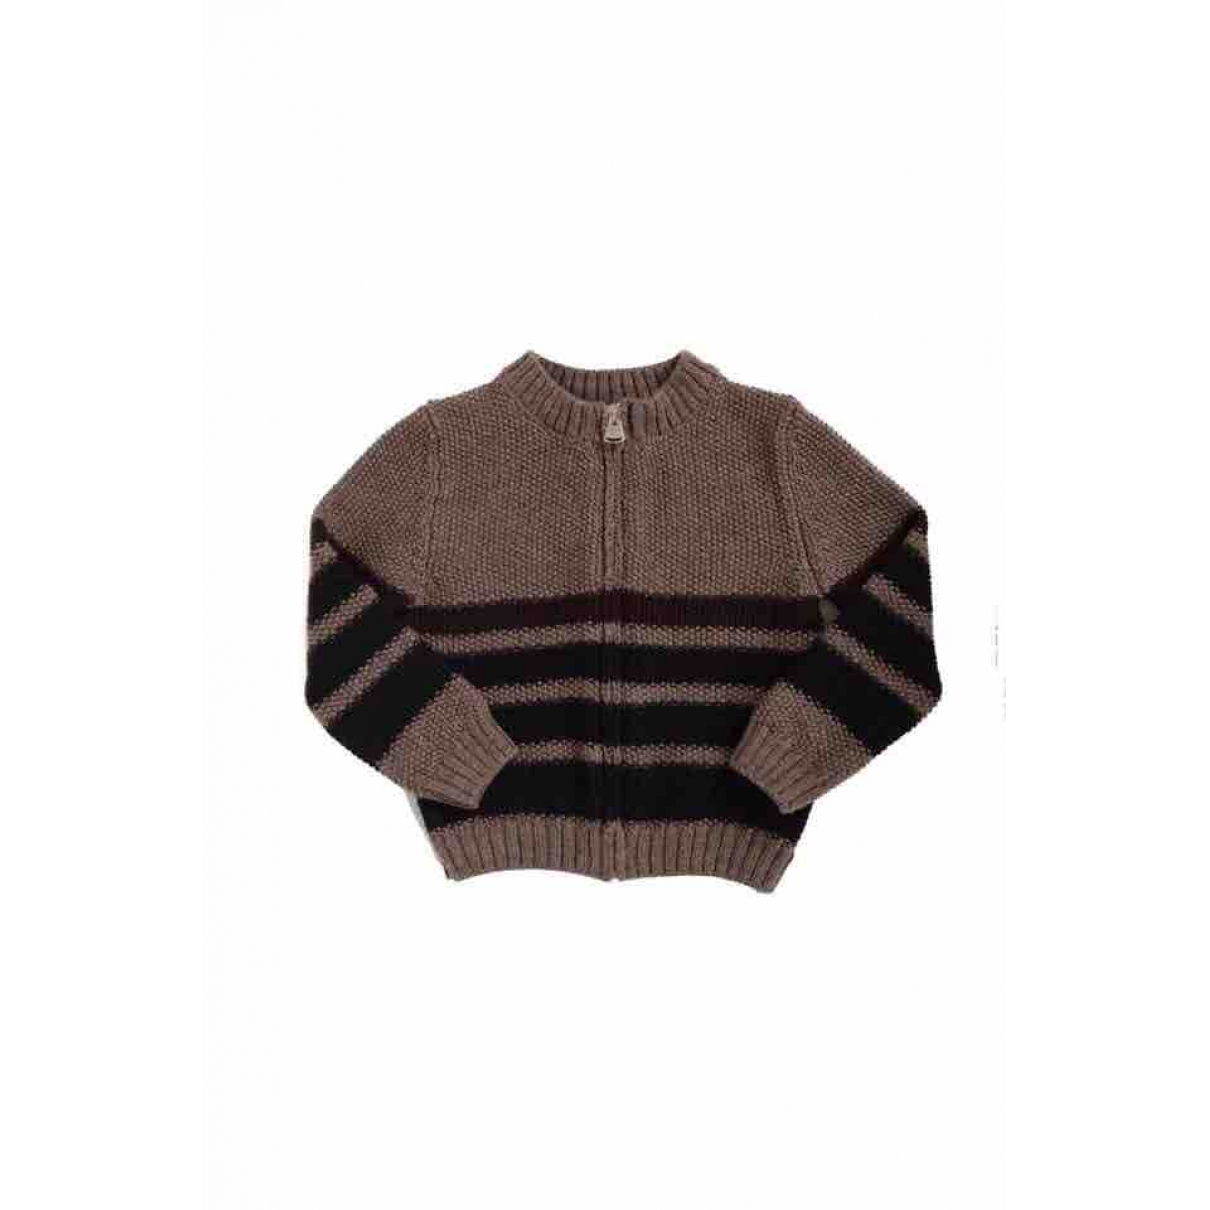 Dolce & Gabbana \N Brown Wool Knitwear for Kids 2 years - up to 86cm FR